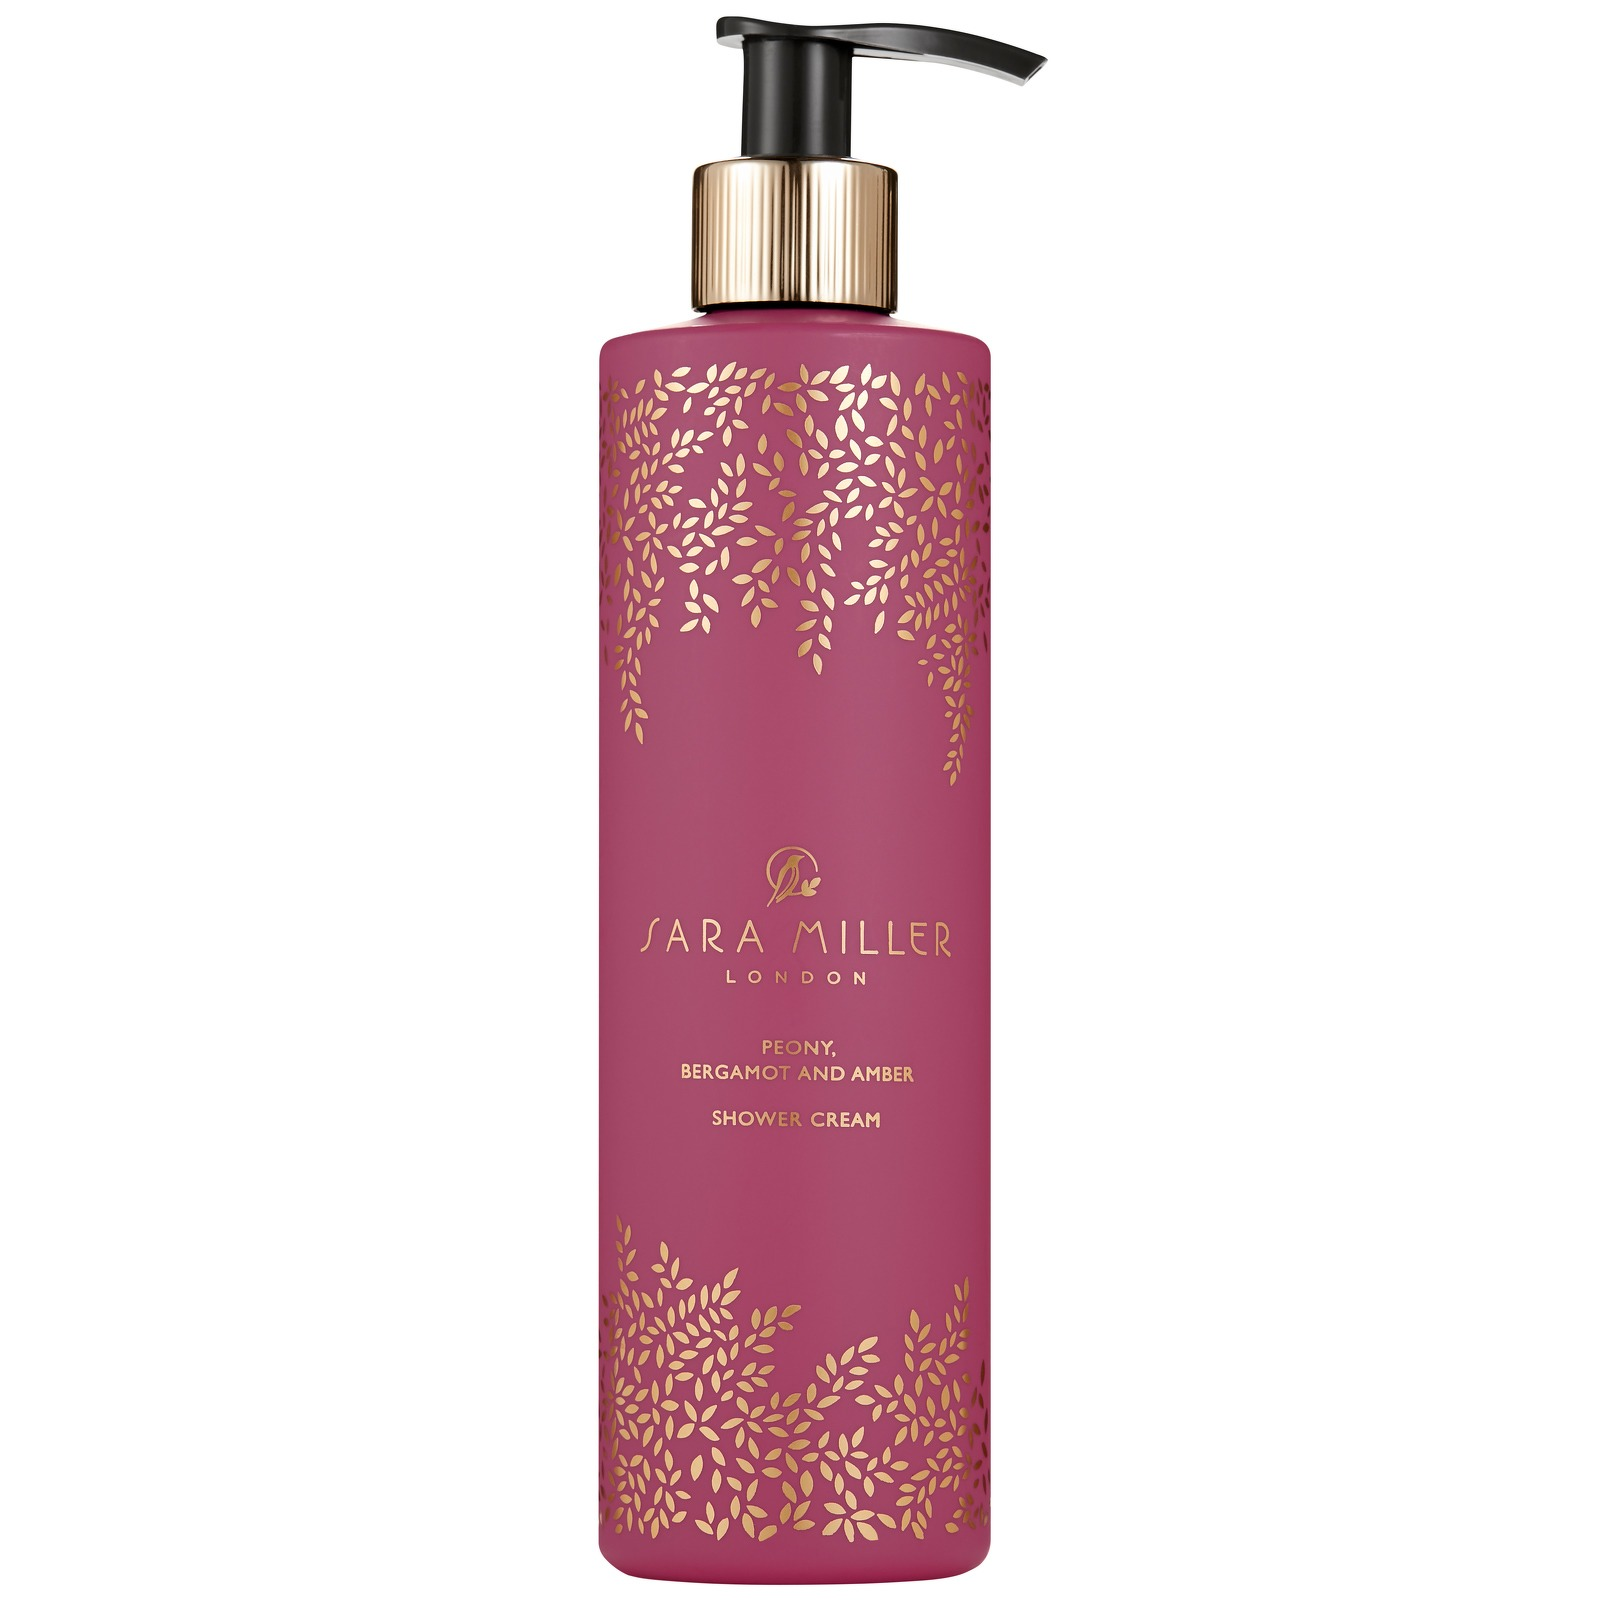 SARA MILLER Cleansers Peony, Bergamot and Amber Shower Cream 300ml